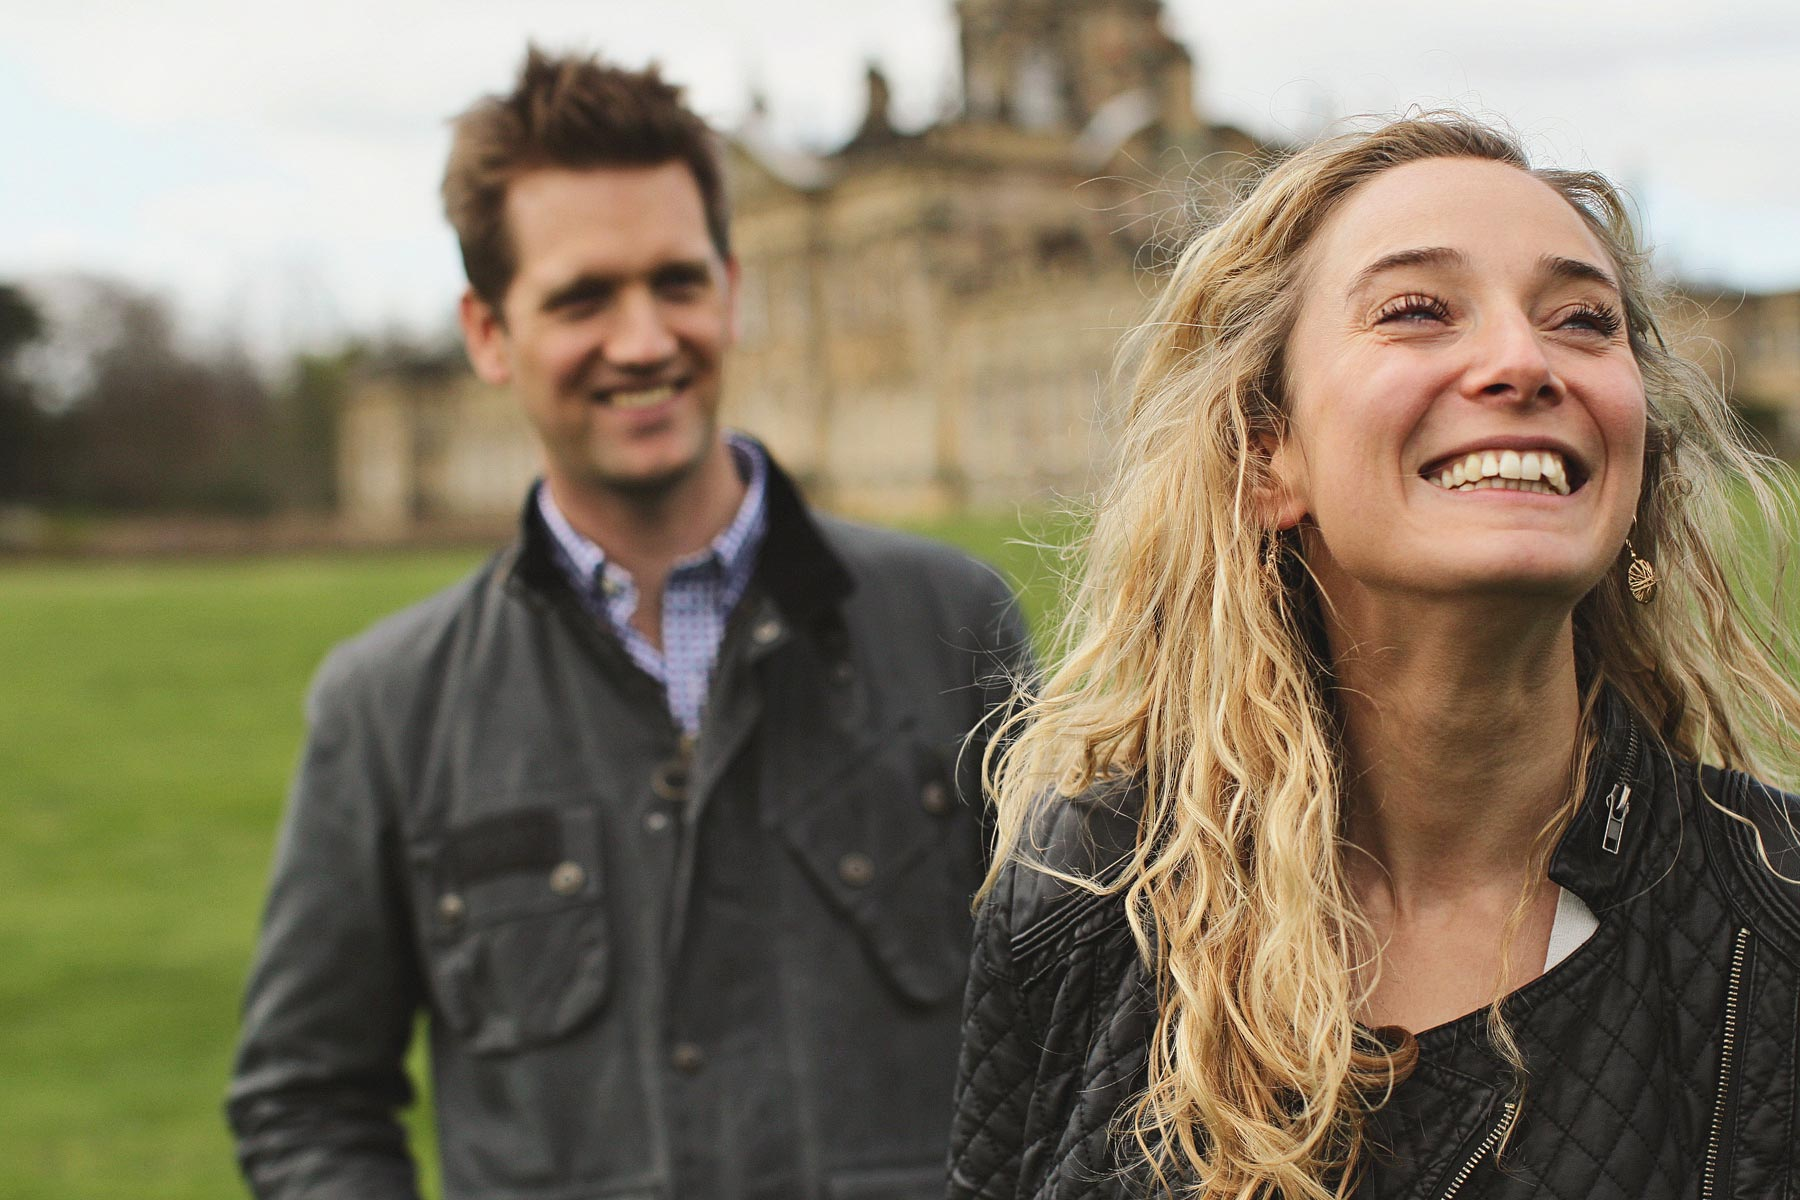 Castle-Howard-Engagement-Shoot-11